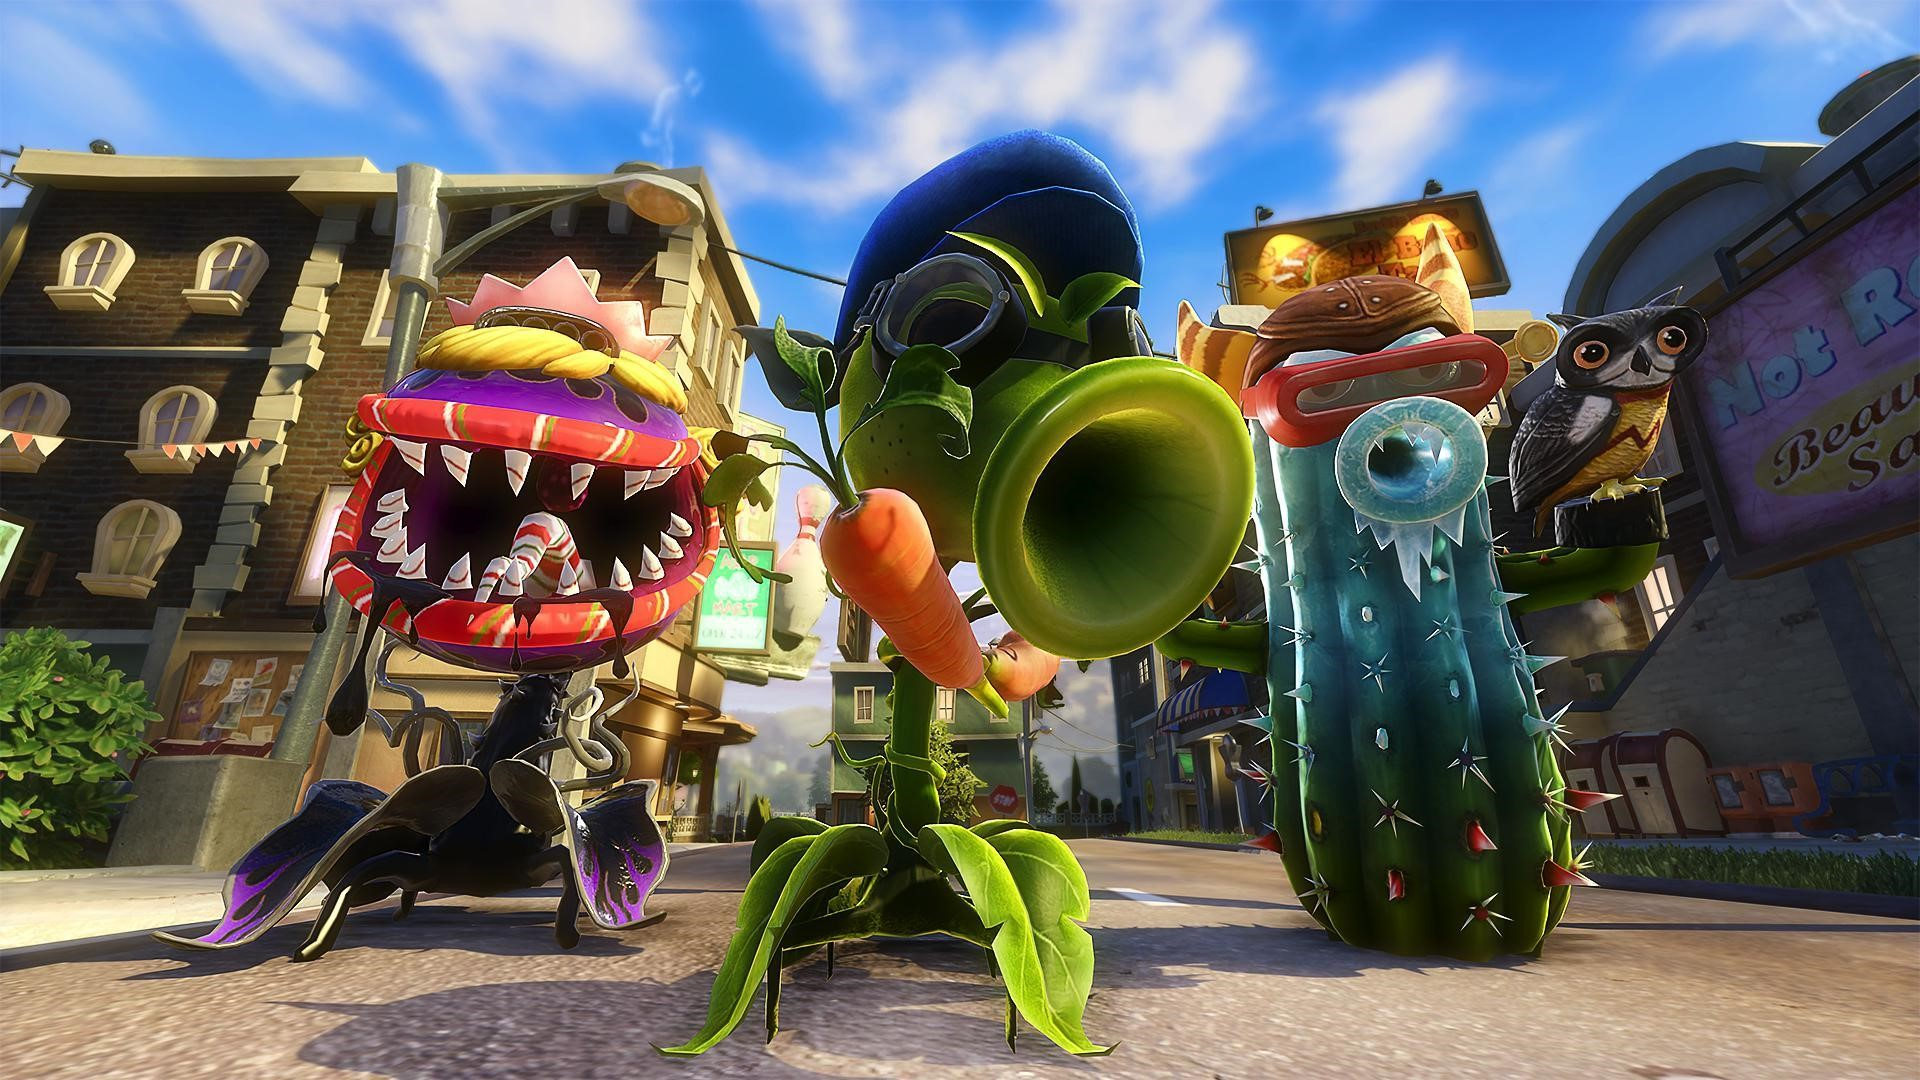 Plants Vs Zombies 2 Pc Download Utorrent For Iphone